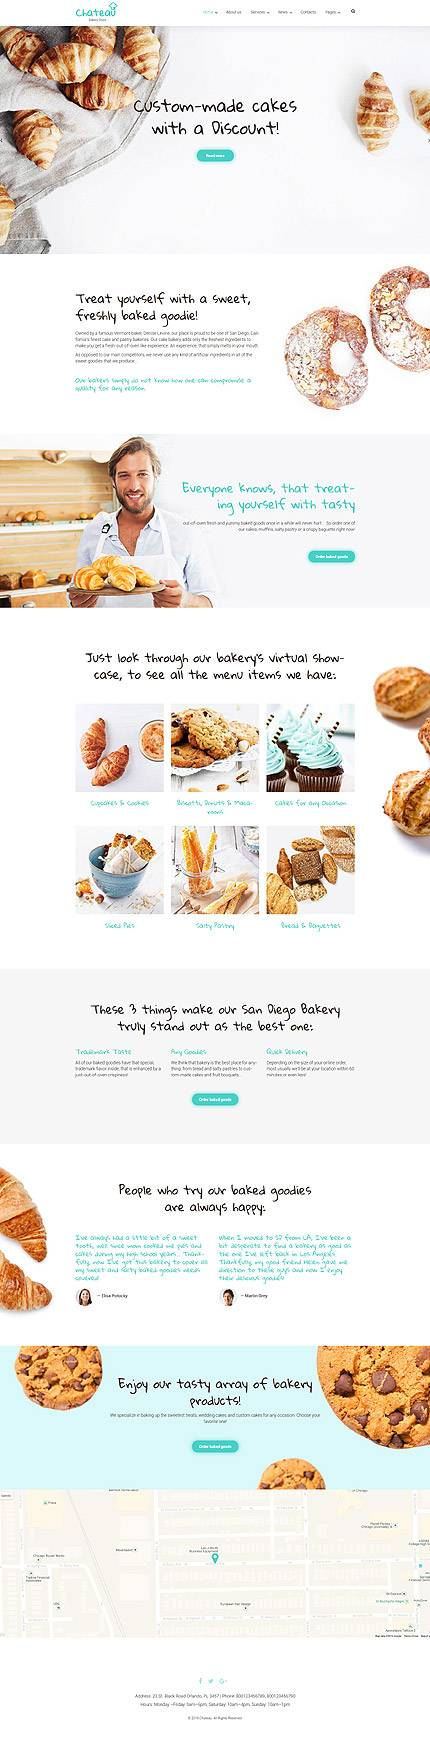 Chateau WordPress Theme for Bakery, Coffee shops and Restaurants